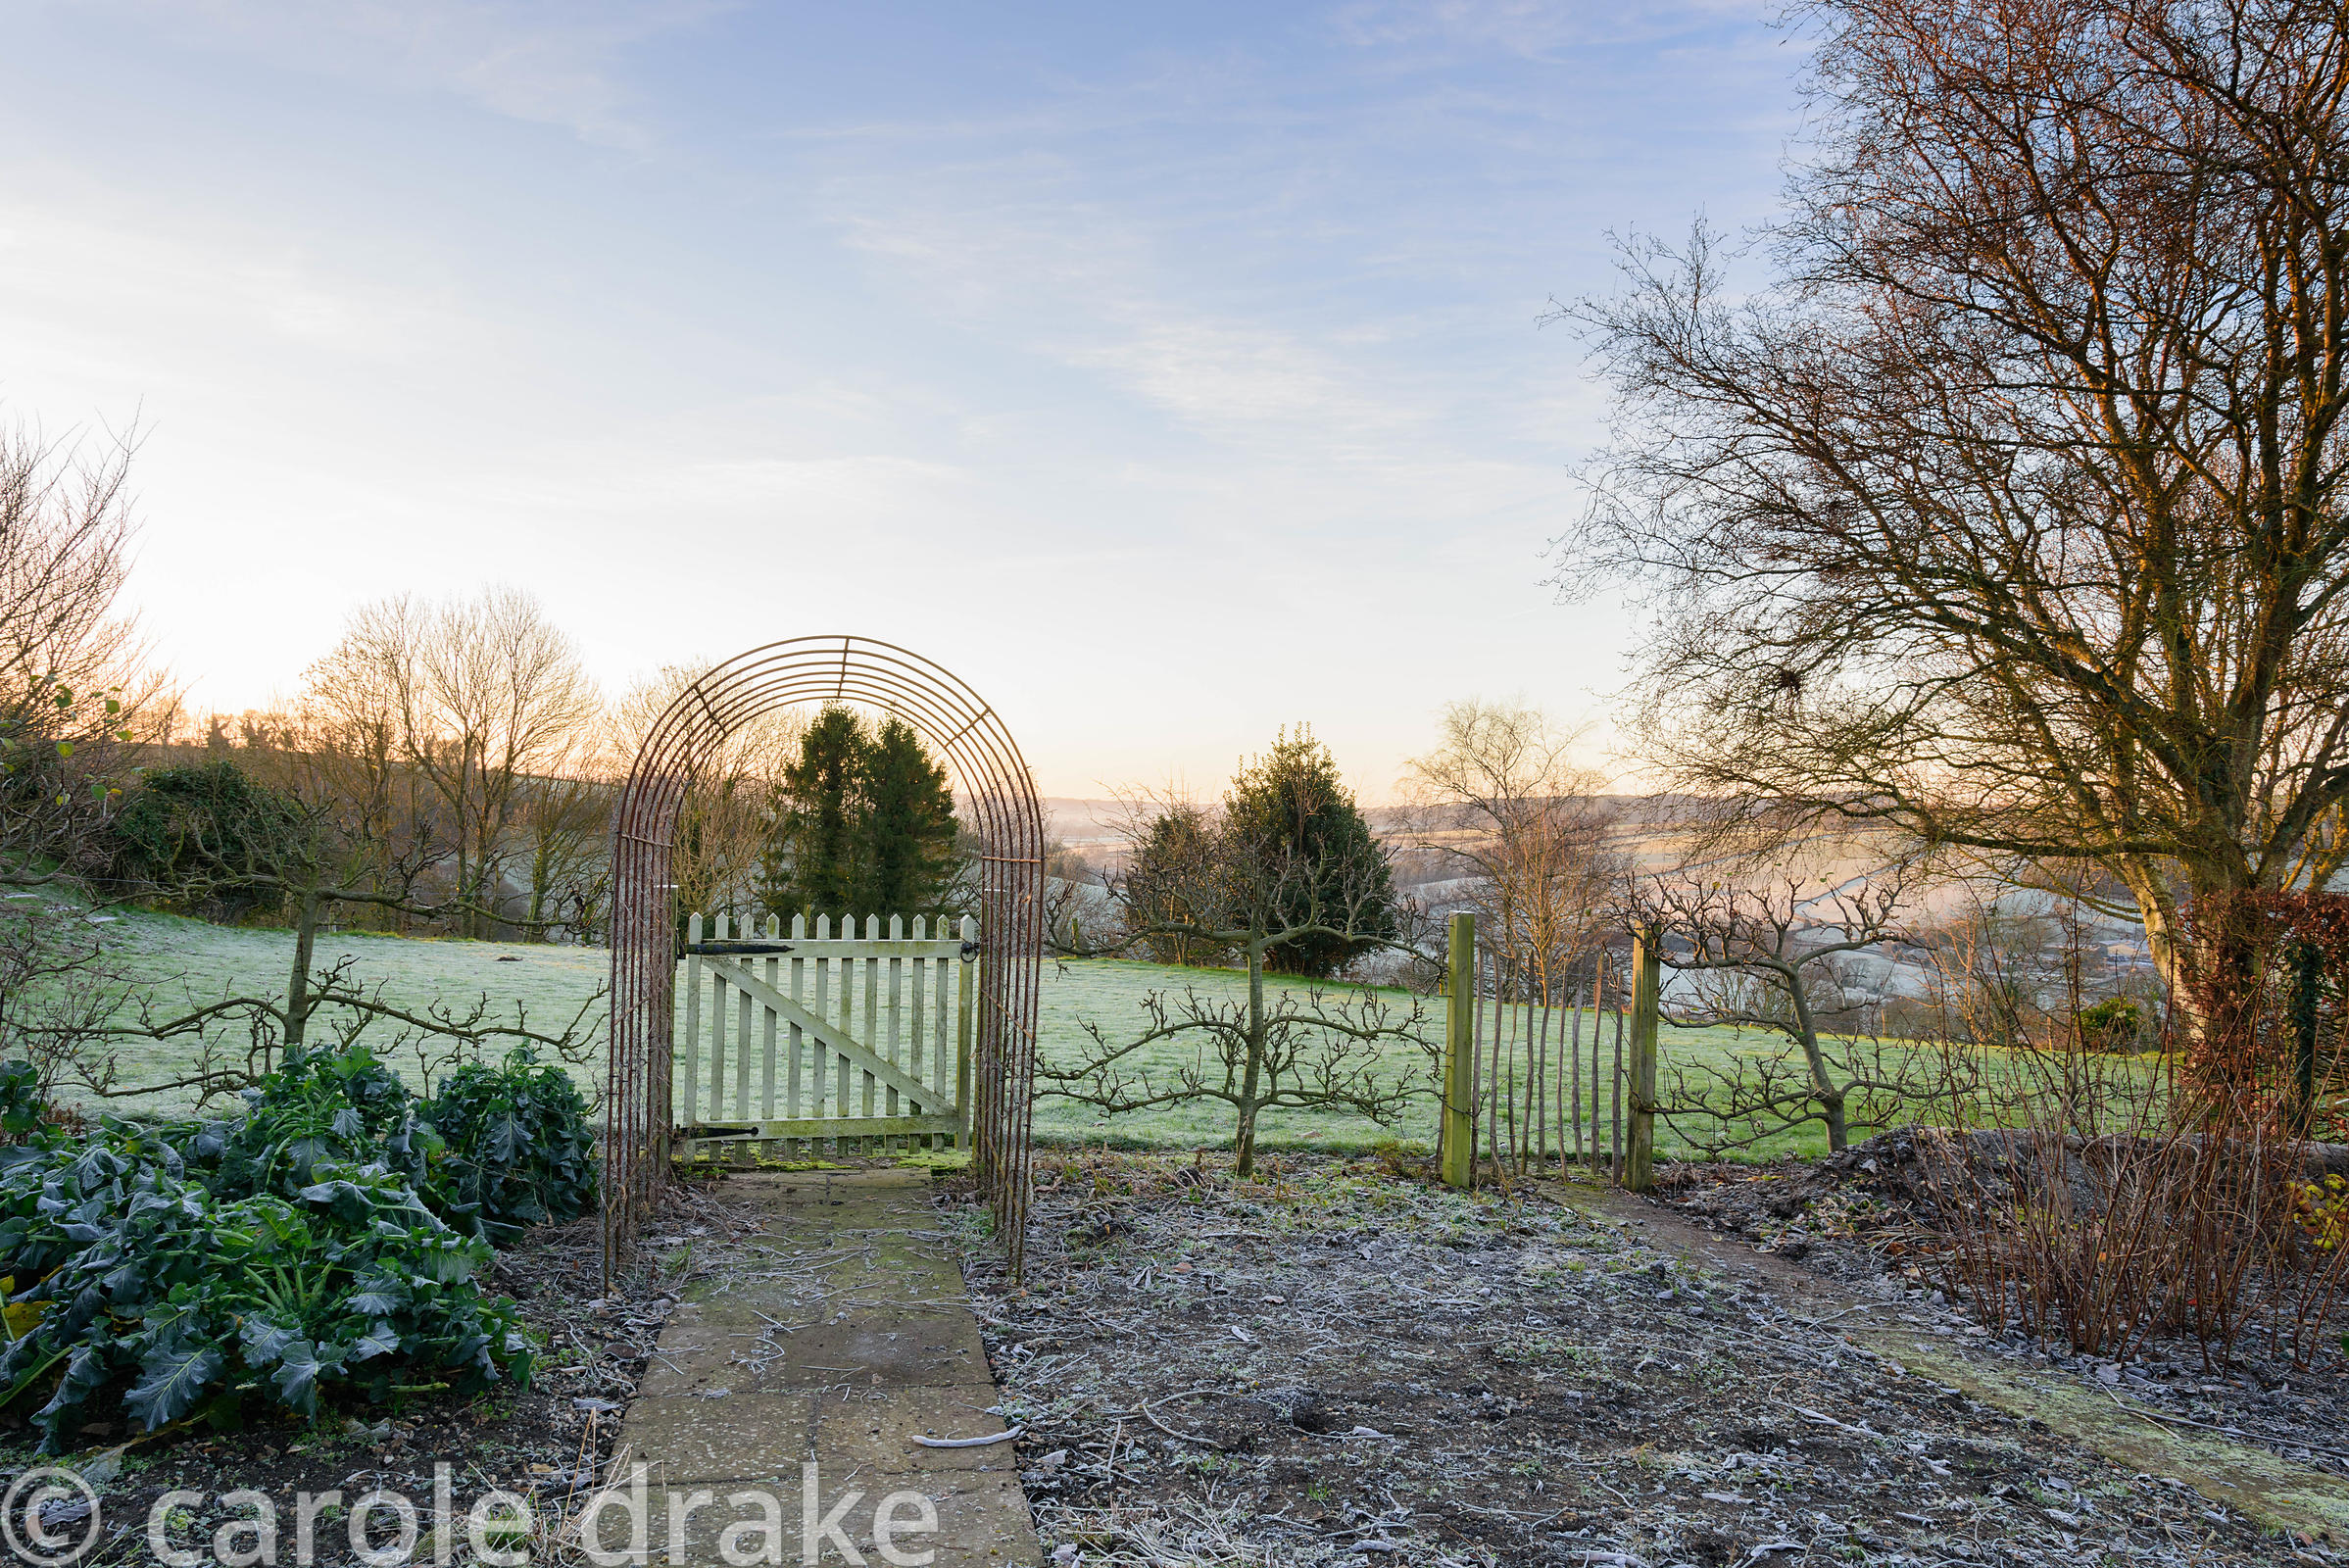 Kitchen garden with view across the Devon countryside on a frosty January morning